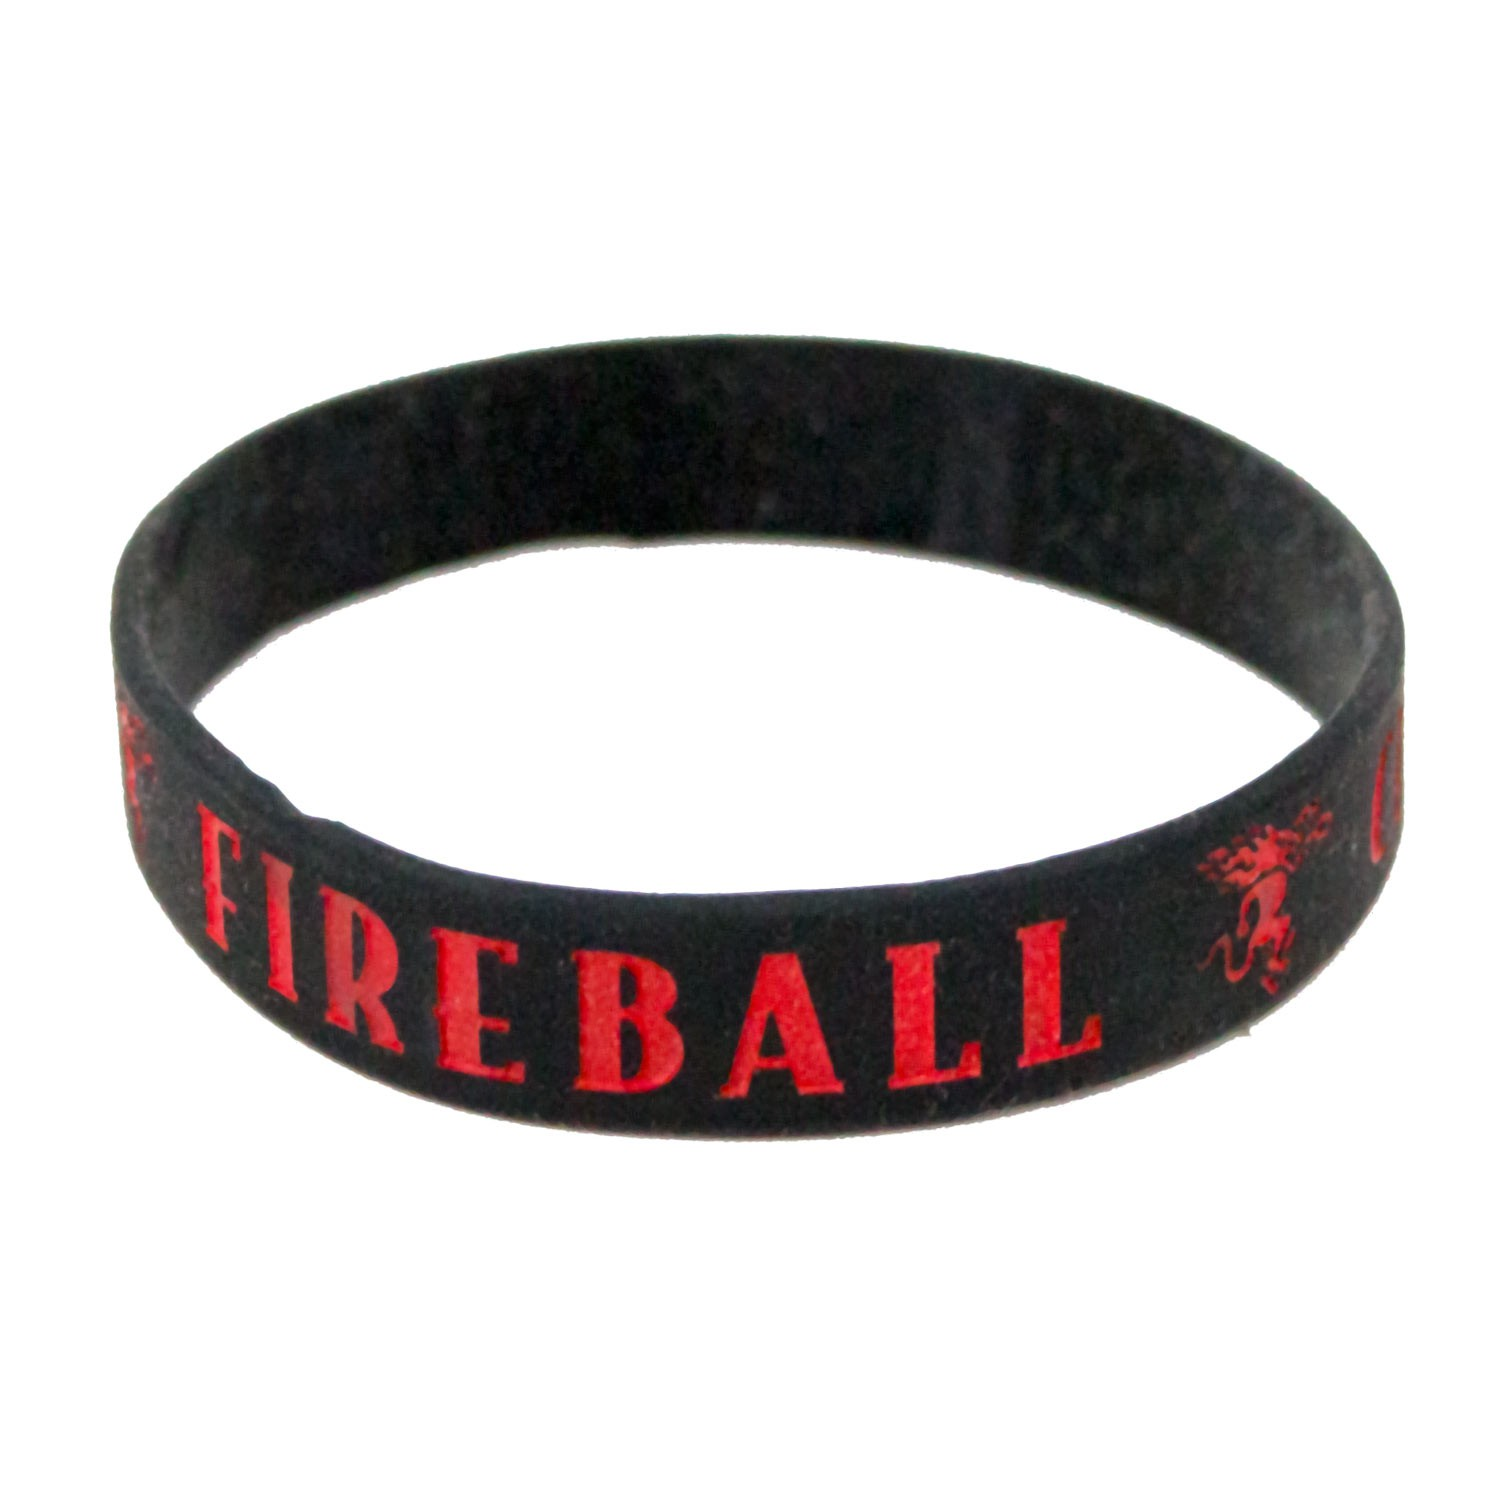 Fireball Whisky Rubber Bracelet